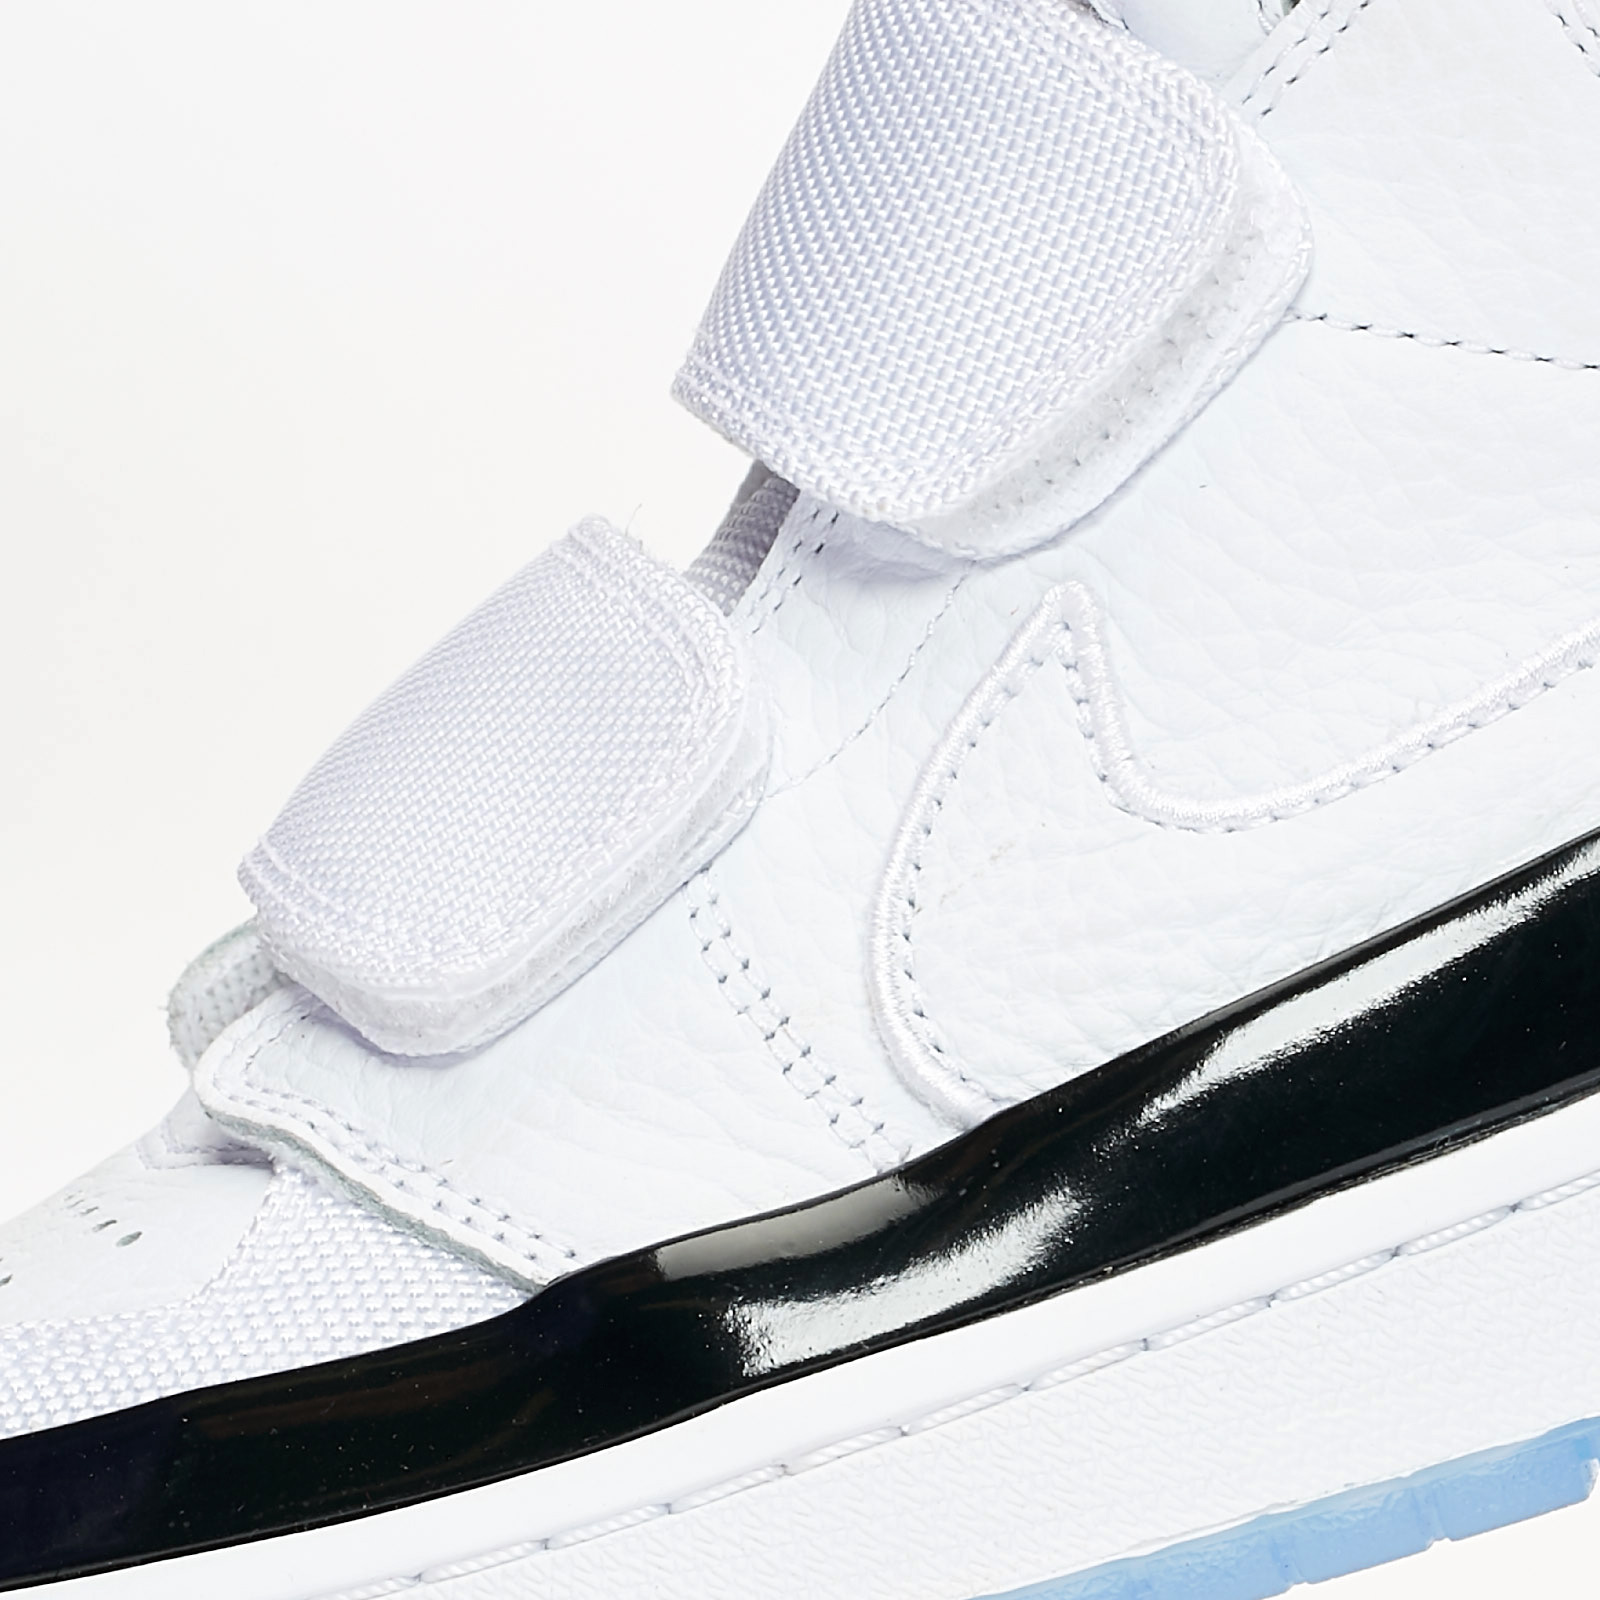 2cb8e2455b9c Jordan Brand Air Jordan 1 Retro High Double Strap - Aq7924-107 ...